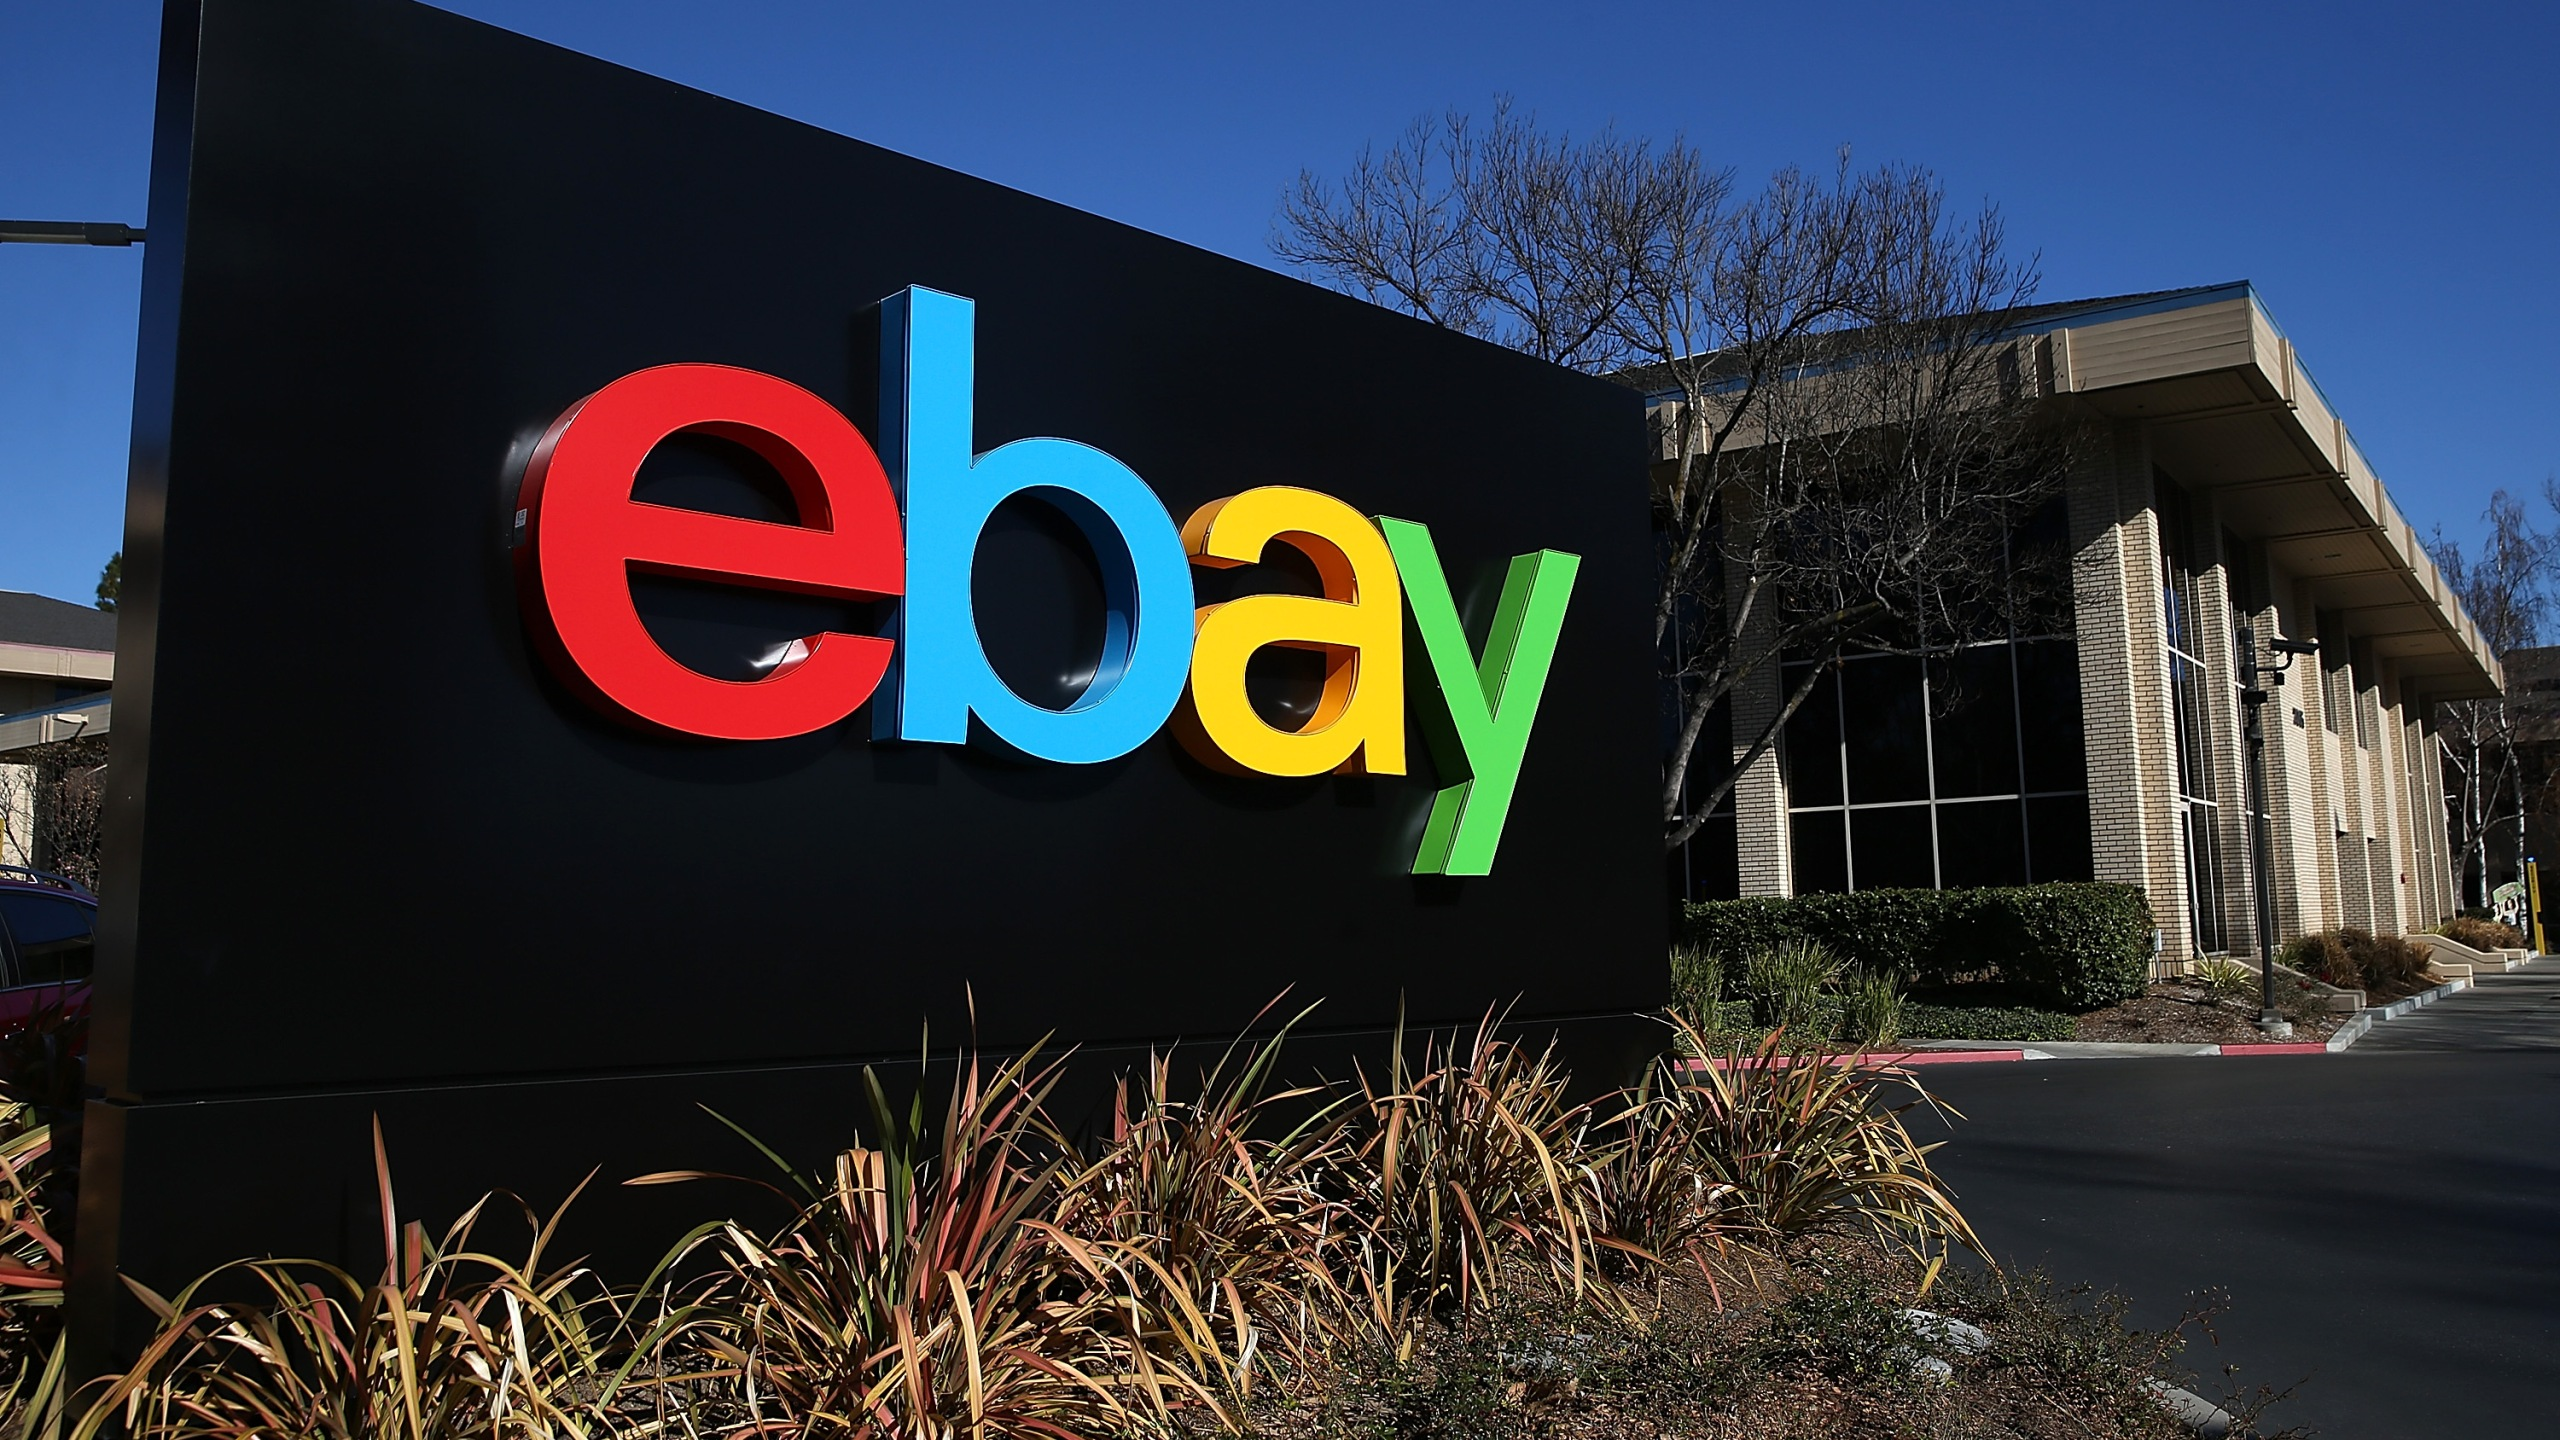 A sign is posted in front of the eBay headquarters on January 22, 2014 in San Jose, California. eBay Inc. (Credit: Justin Sullivan/Getty Images)